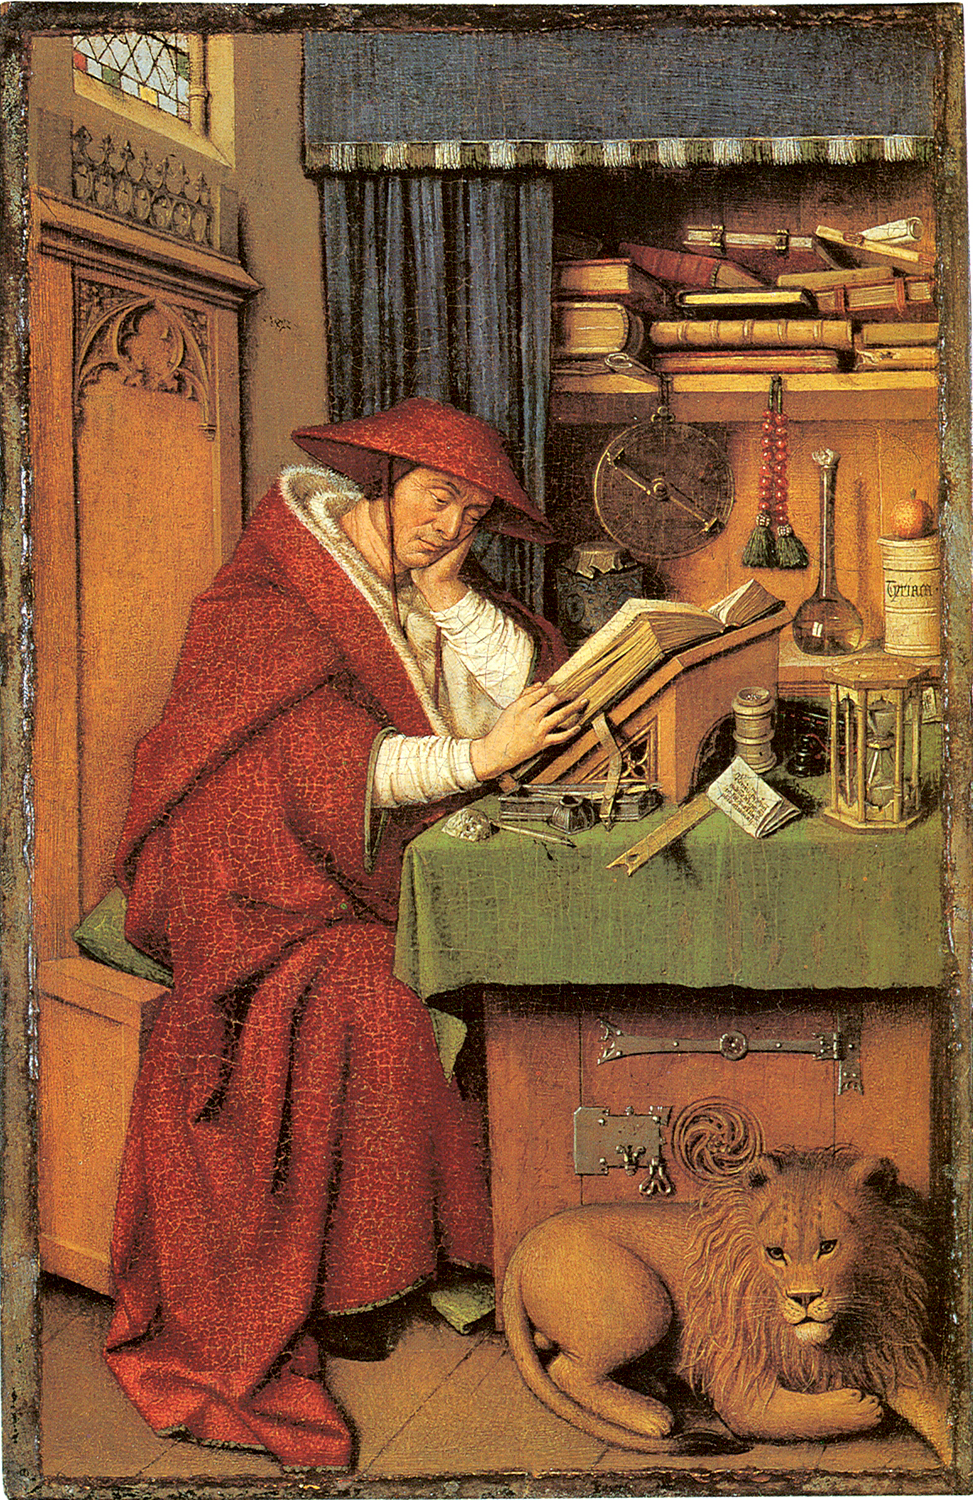 Jan van Eyck (about 1395-1441)  Saint Jerome in his Study  Oil on linen paper on panel, about 1435  20.6 x 13.3 cm (panel), 19.9 x 12.5 (painted surface)  Institute of Arts, Michigan, Detroit, USA